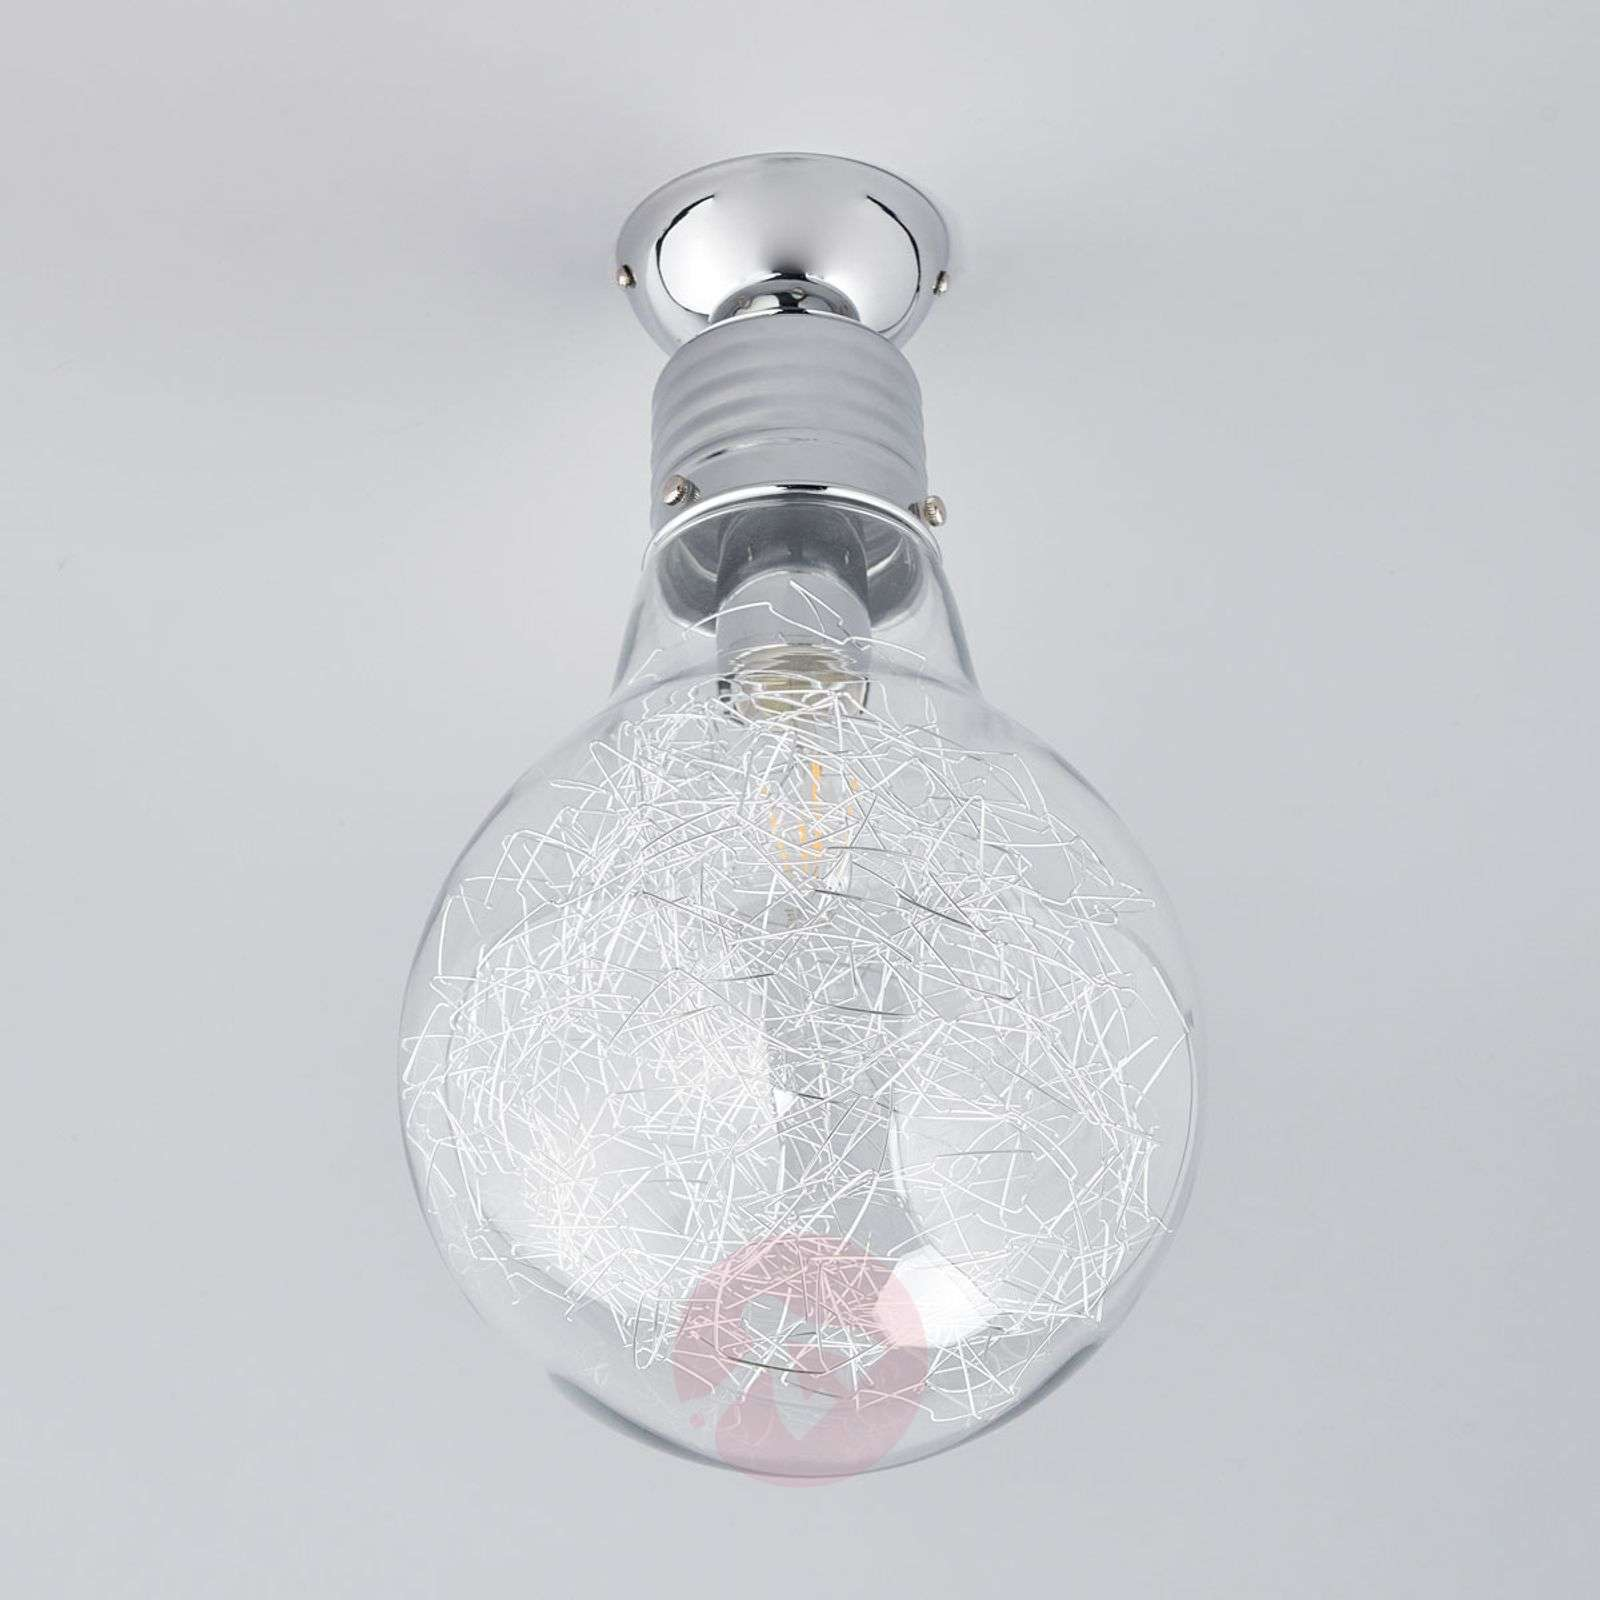 Rubi ceiling lamp in the shape of a light bulb-9970131-03